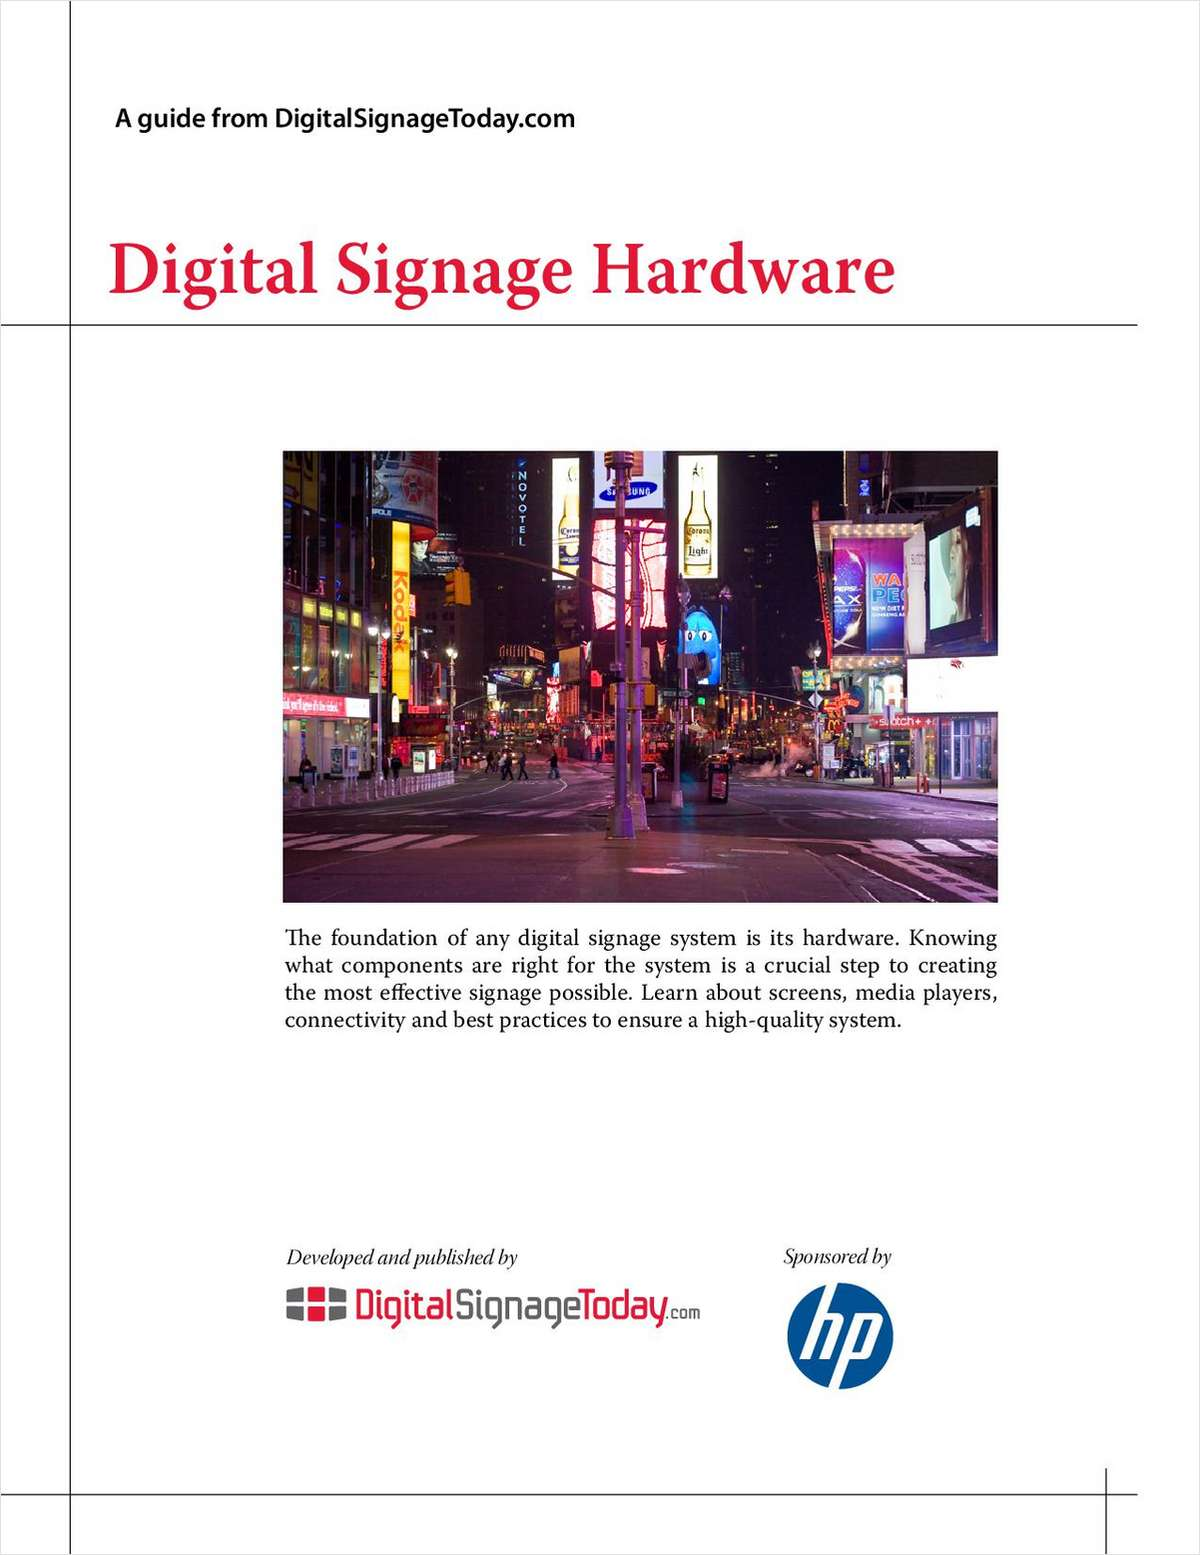 Digital Signage Hardware